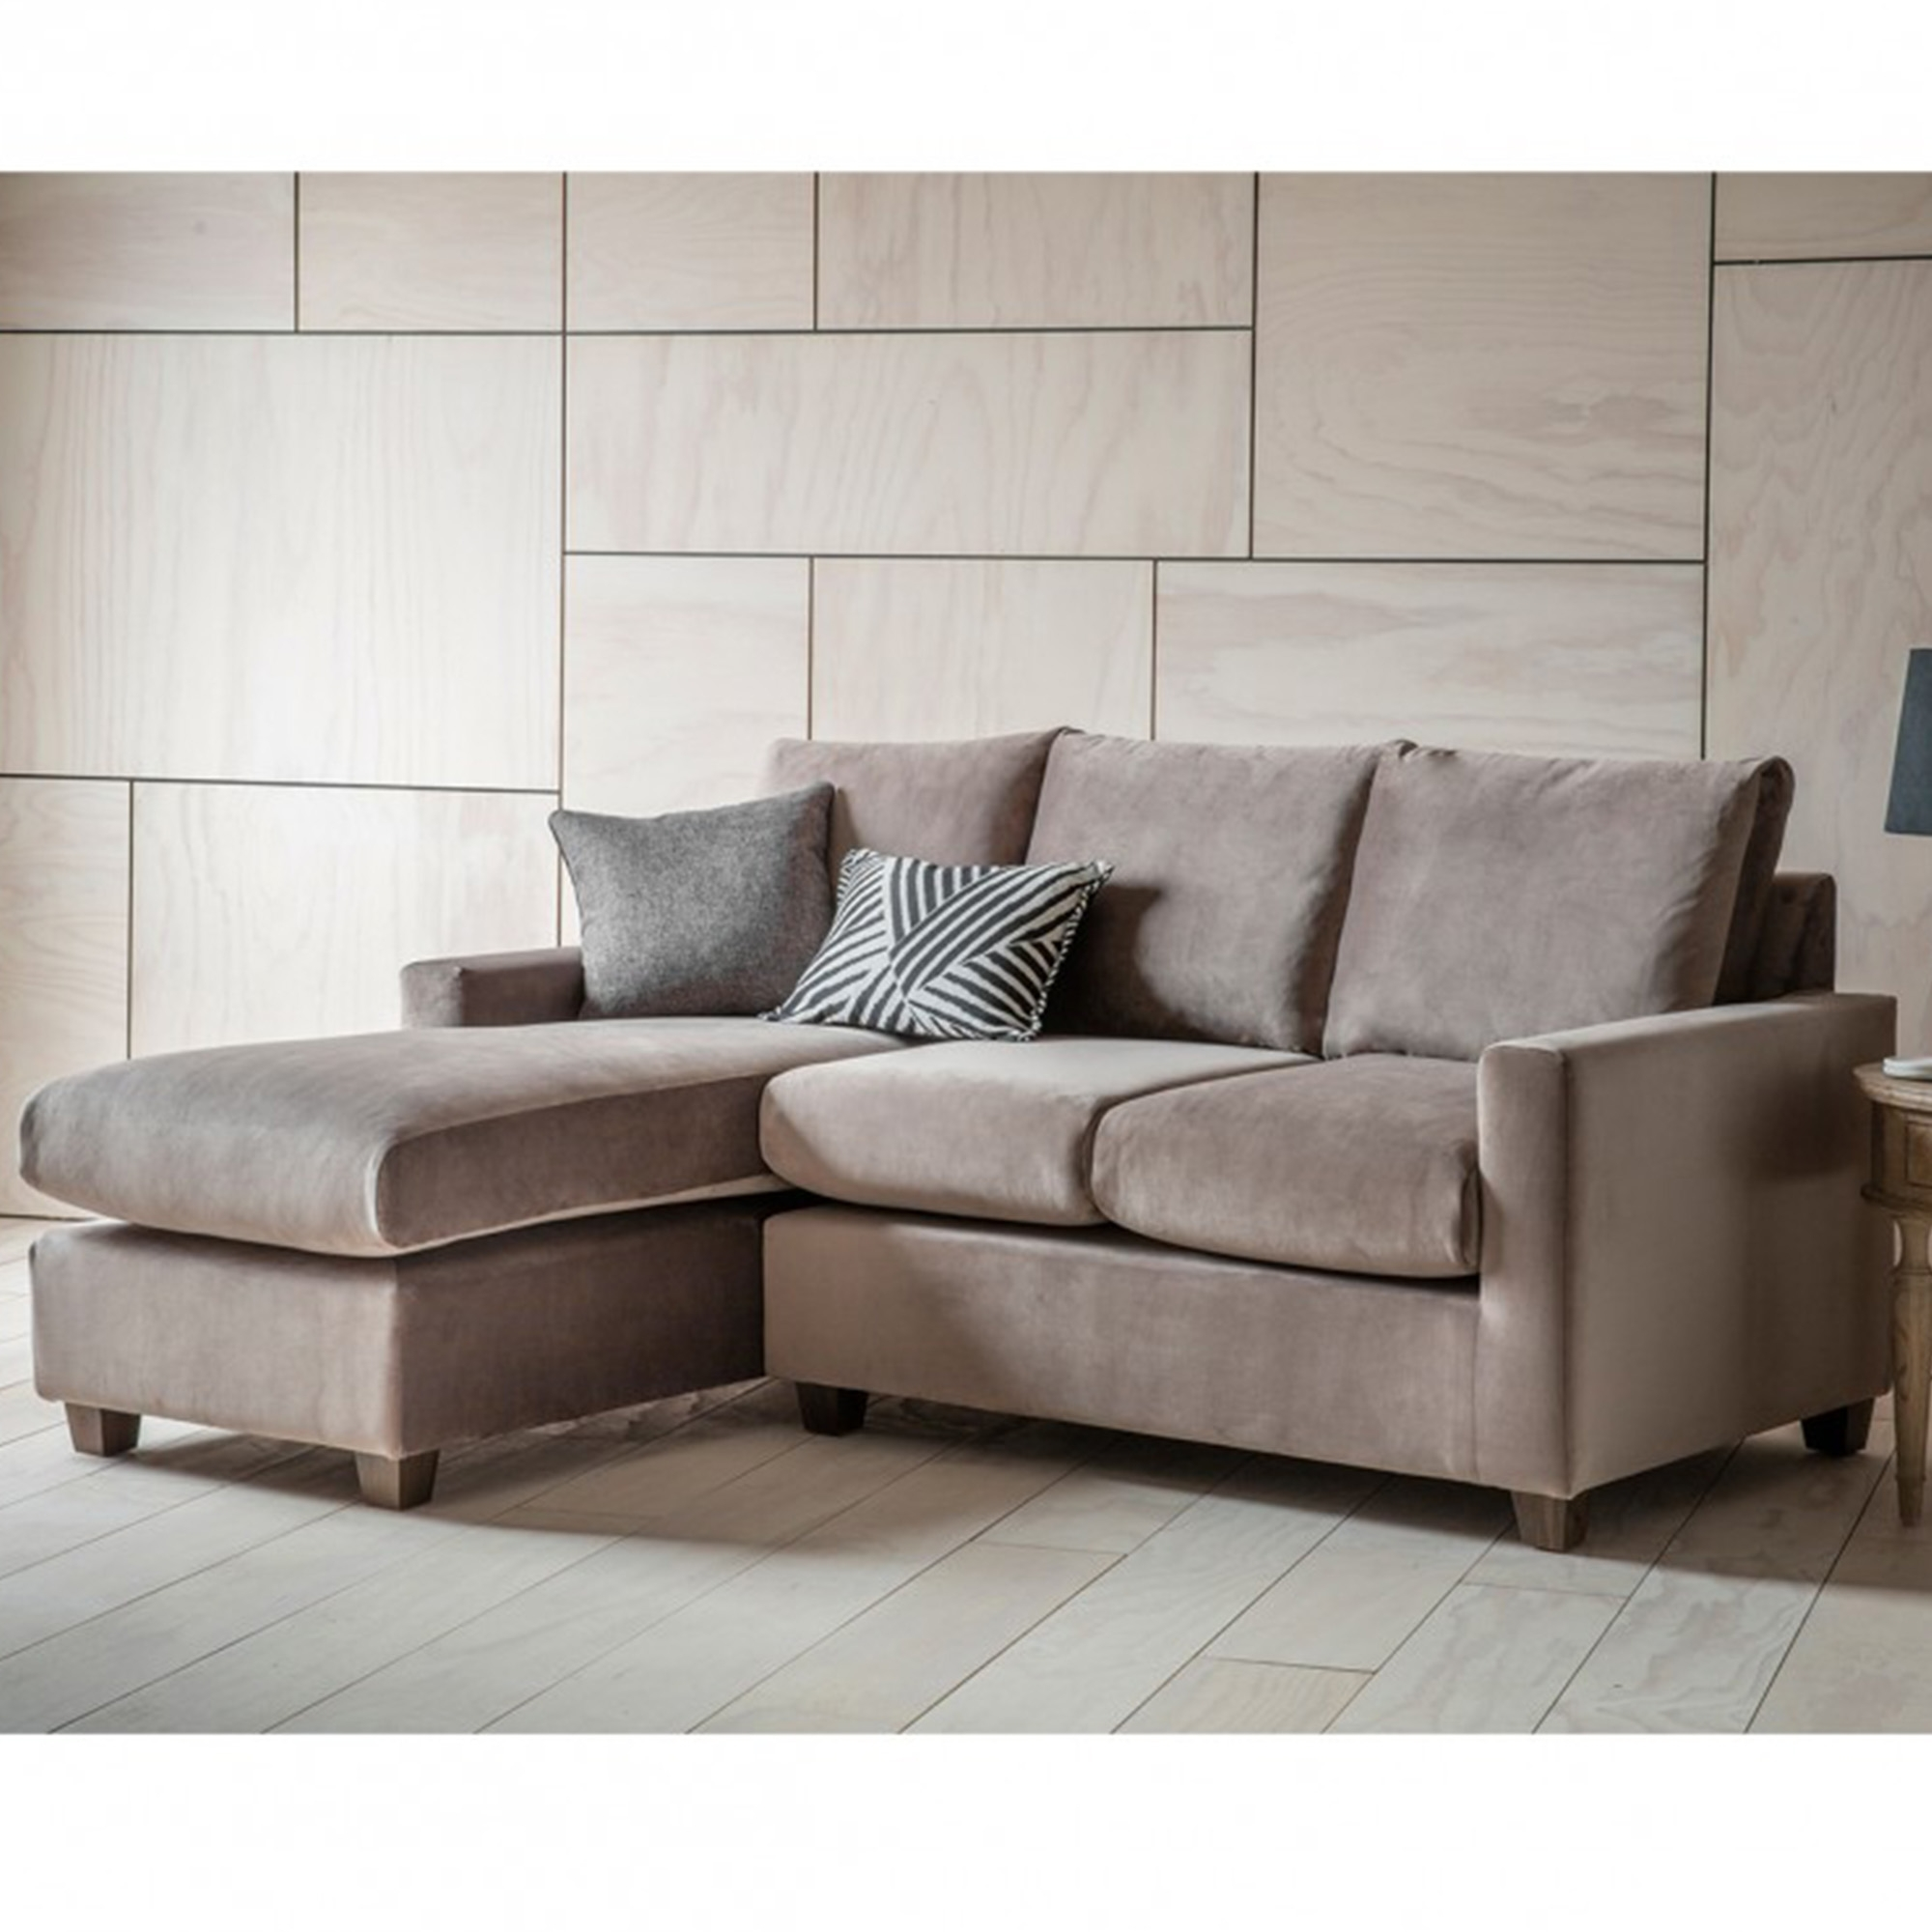 brussels taupe stratford rh chaise sofa seating online. Black Bedroom Furniture Sets. Home Design Ideas